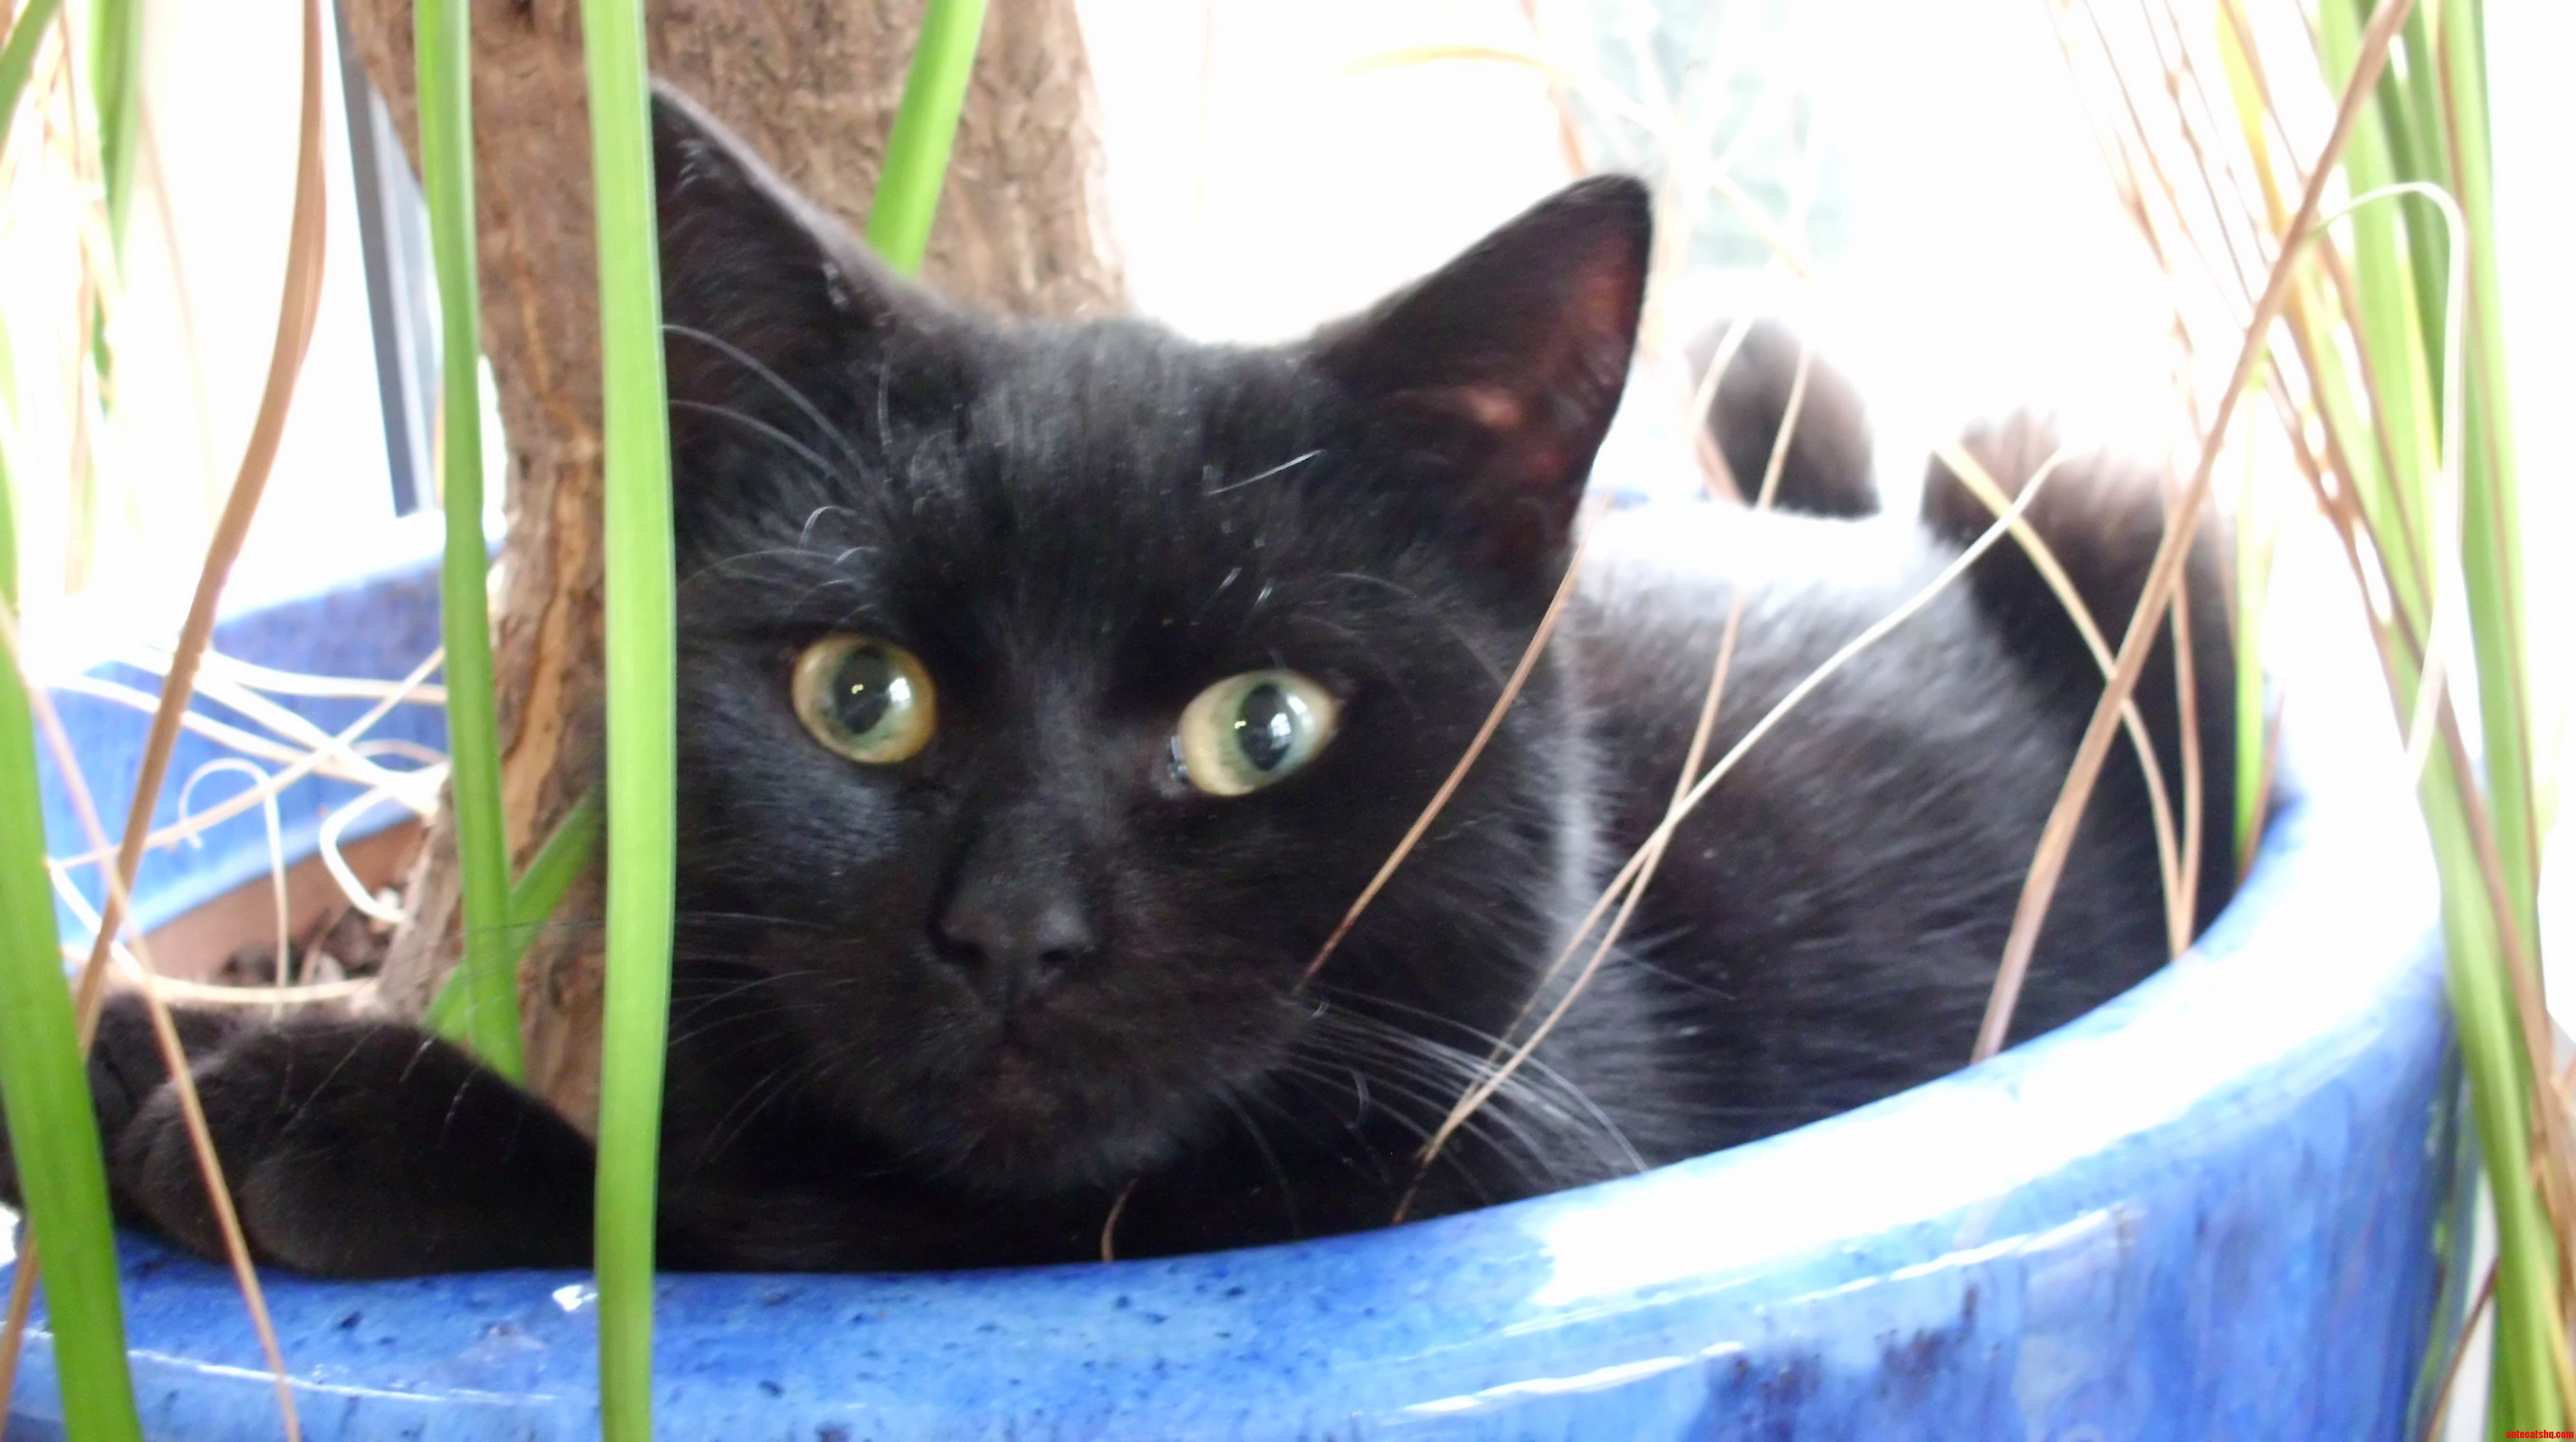 My plant feels much better now after its after-cat experience